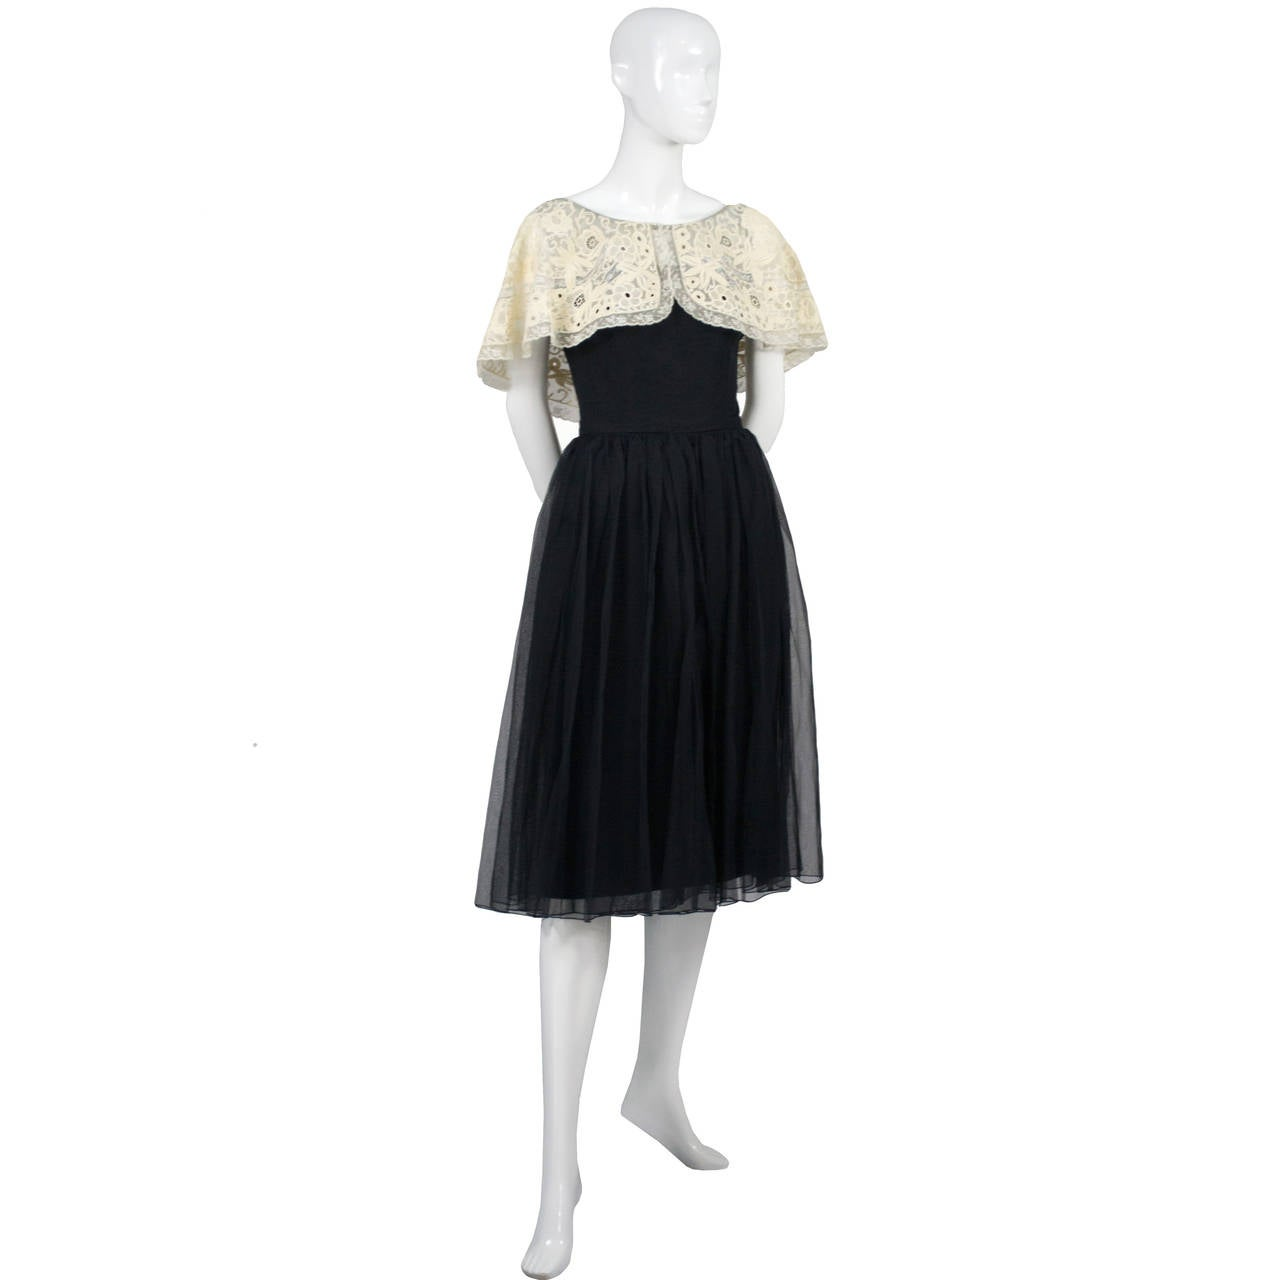 Larry Aldrich 1950s Vintage Dress Black Organza Wide Fine Lace Collar 7